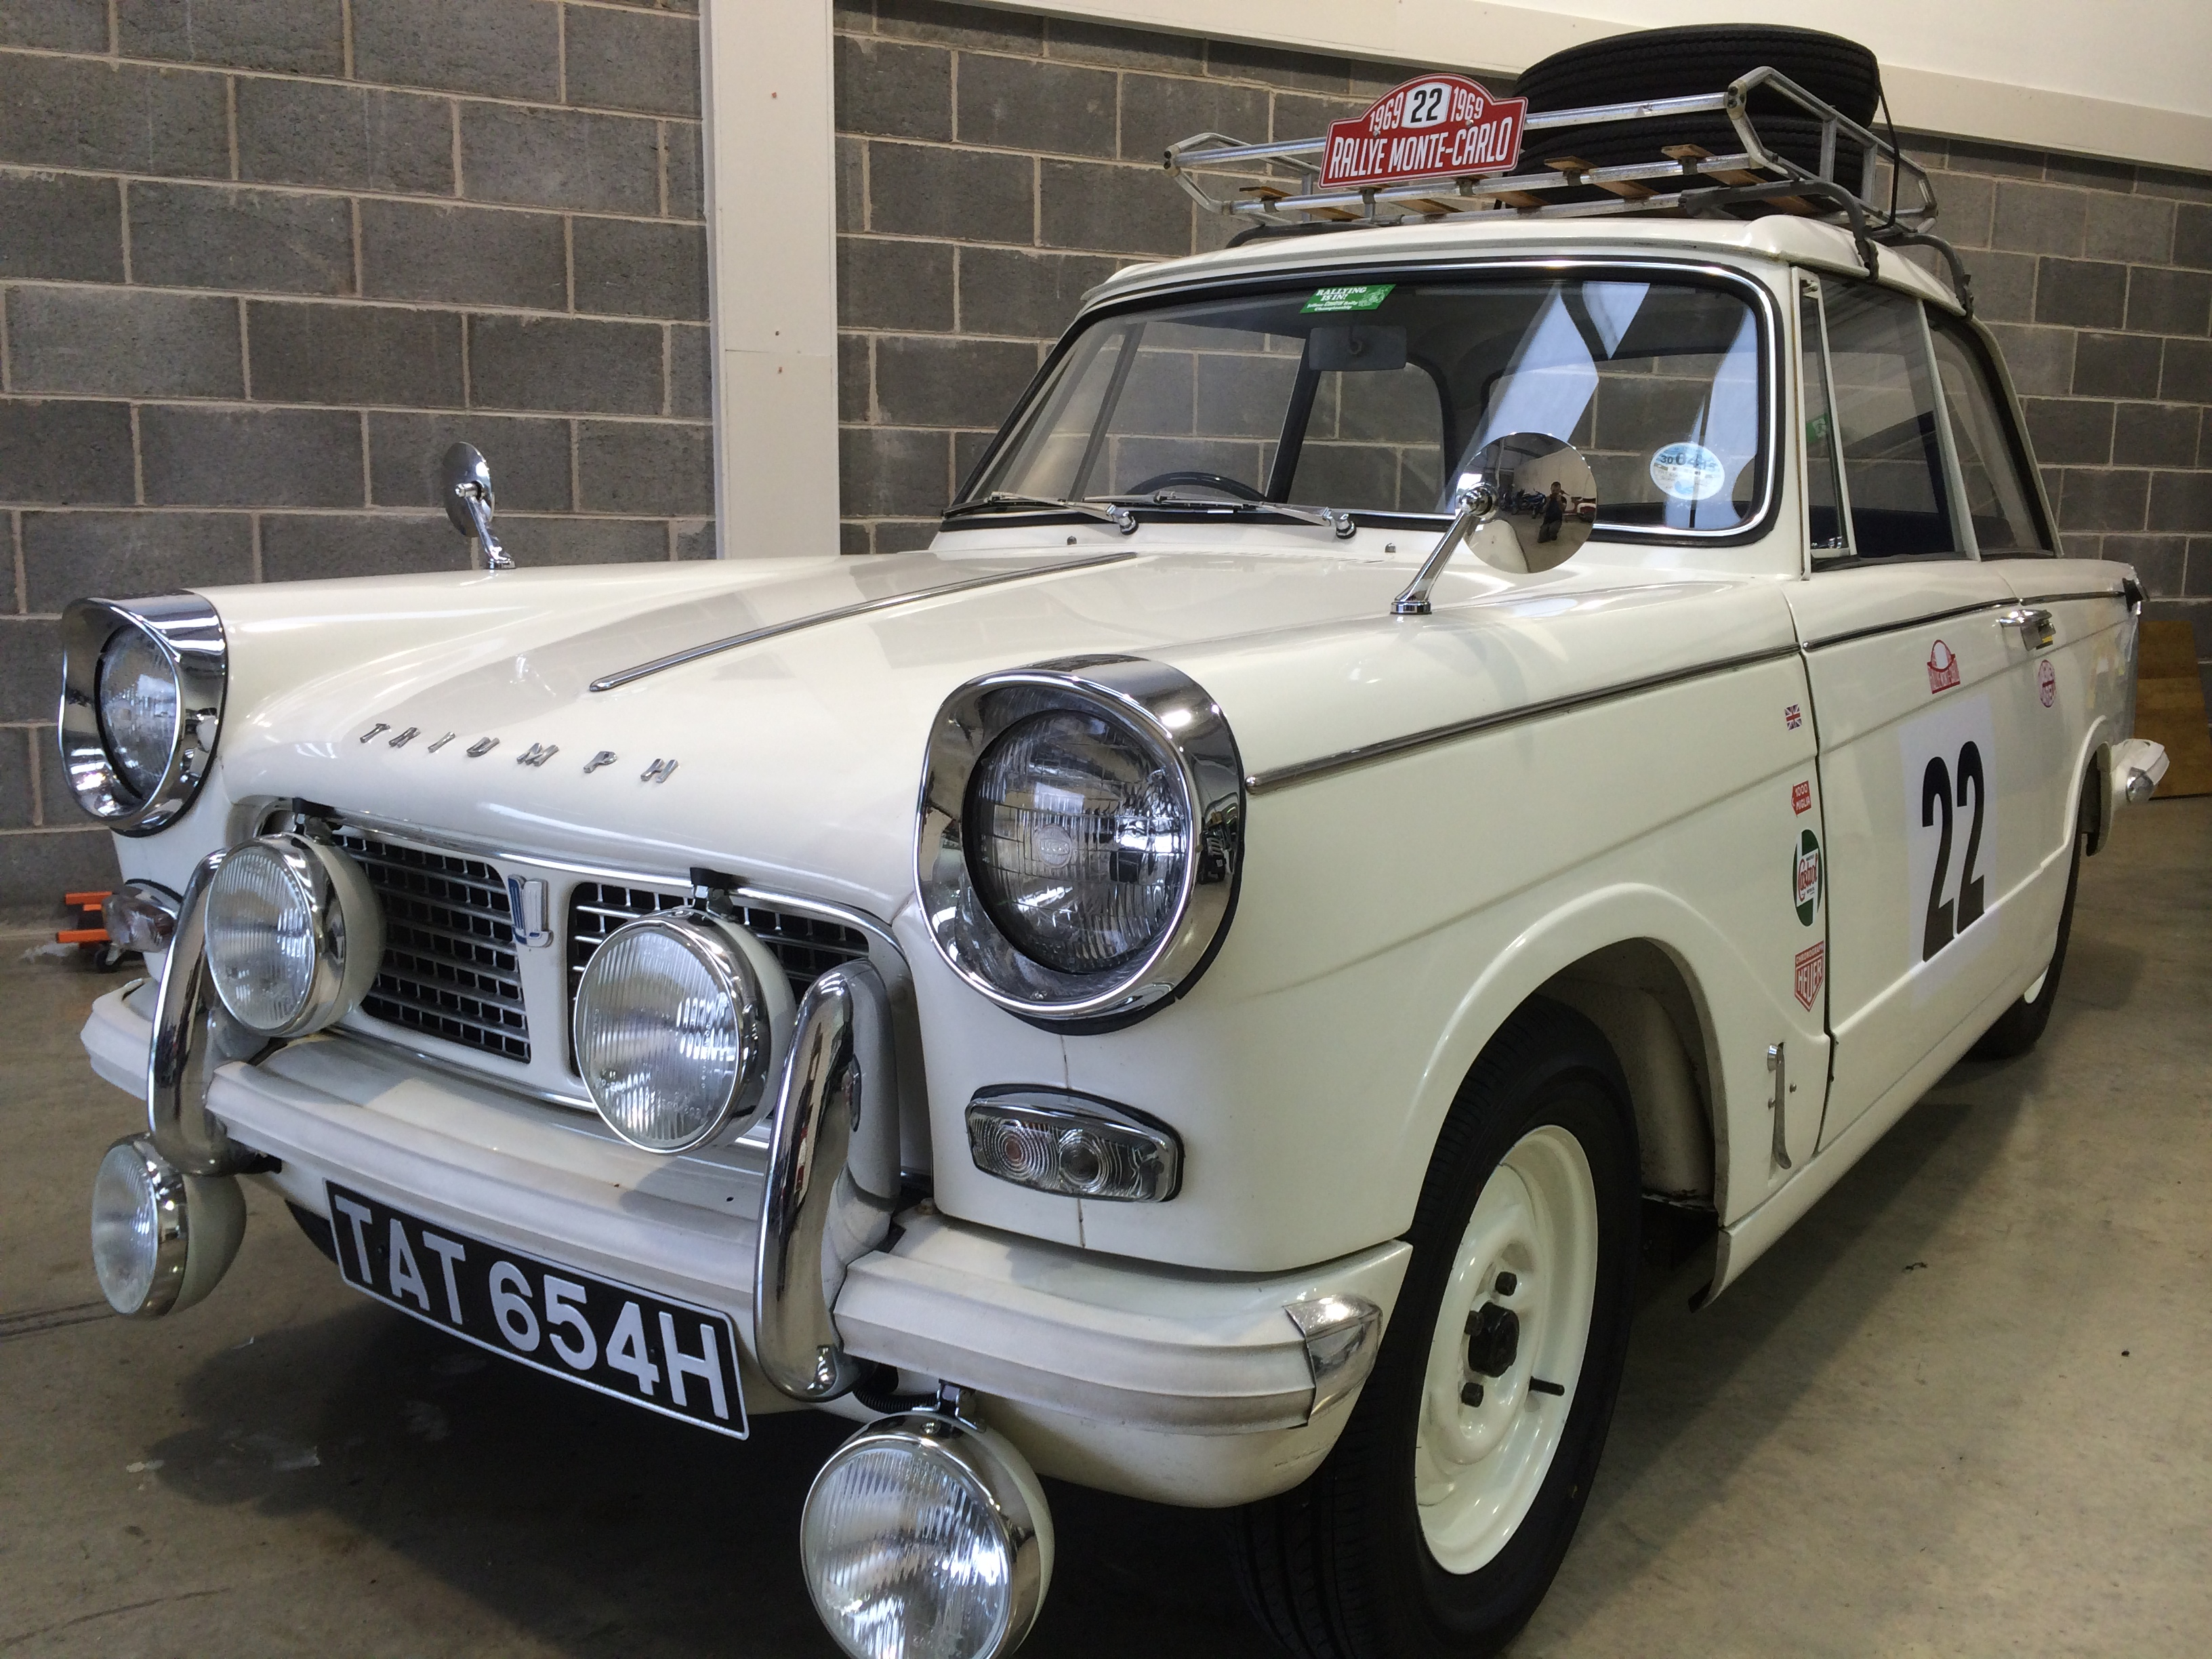 1969 Triumph Herald Rally car